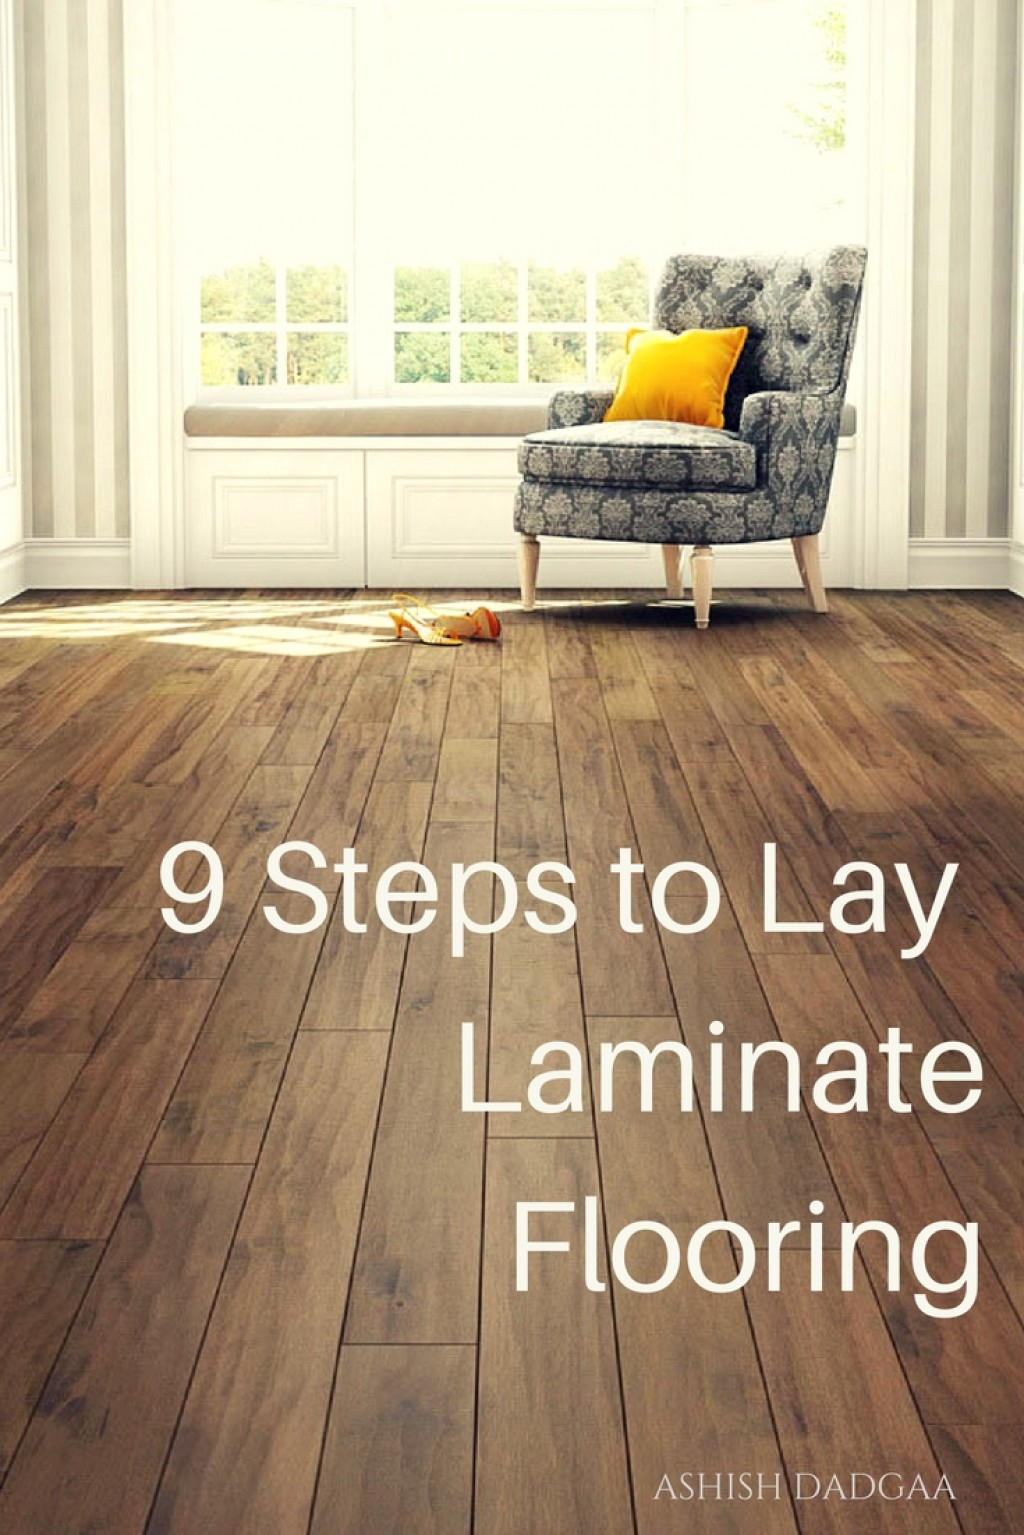 How to install laminate flooring on wood subfloor dengarden for Installing laminate wood flooring